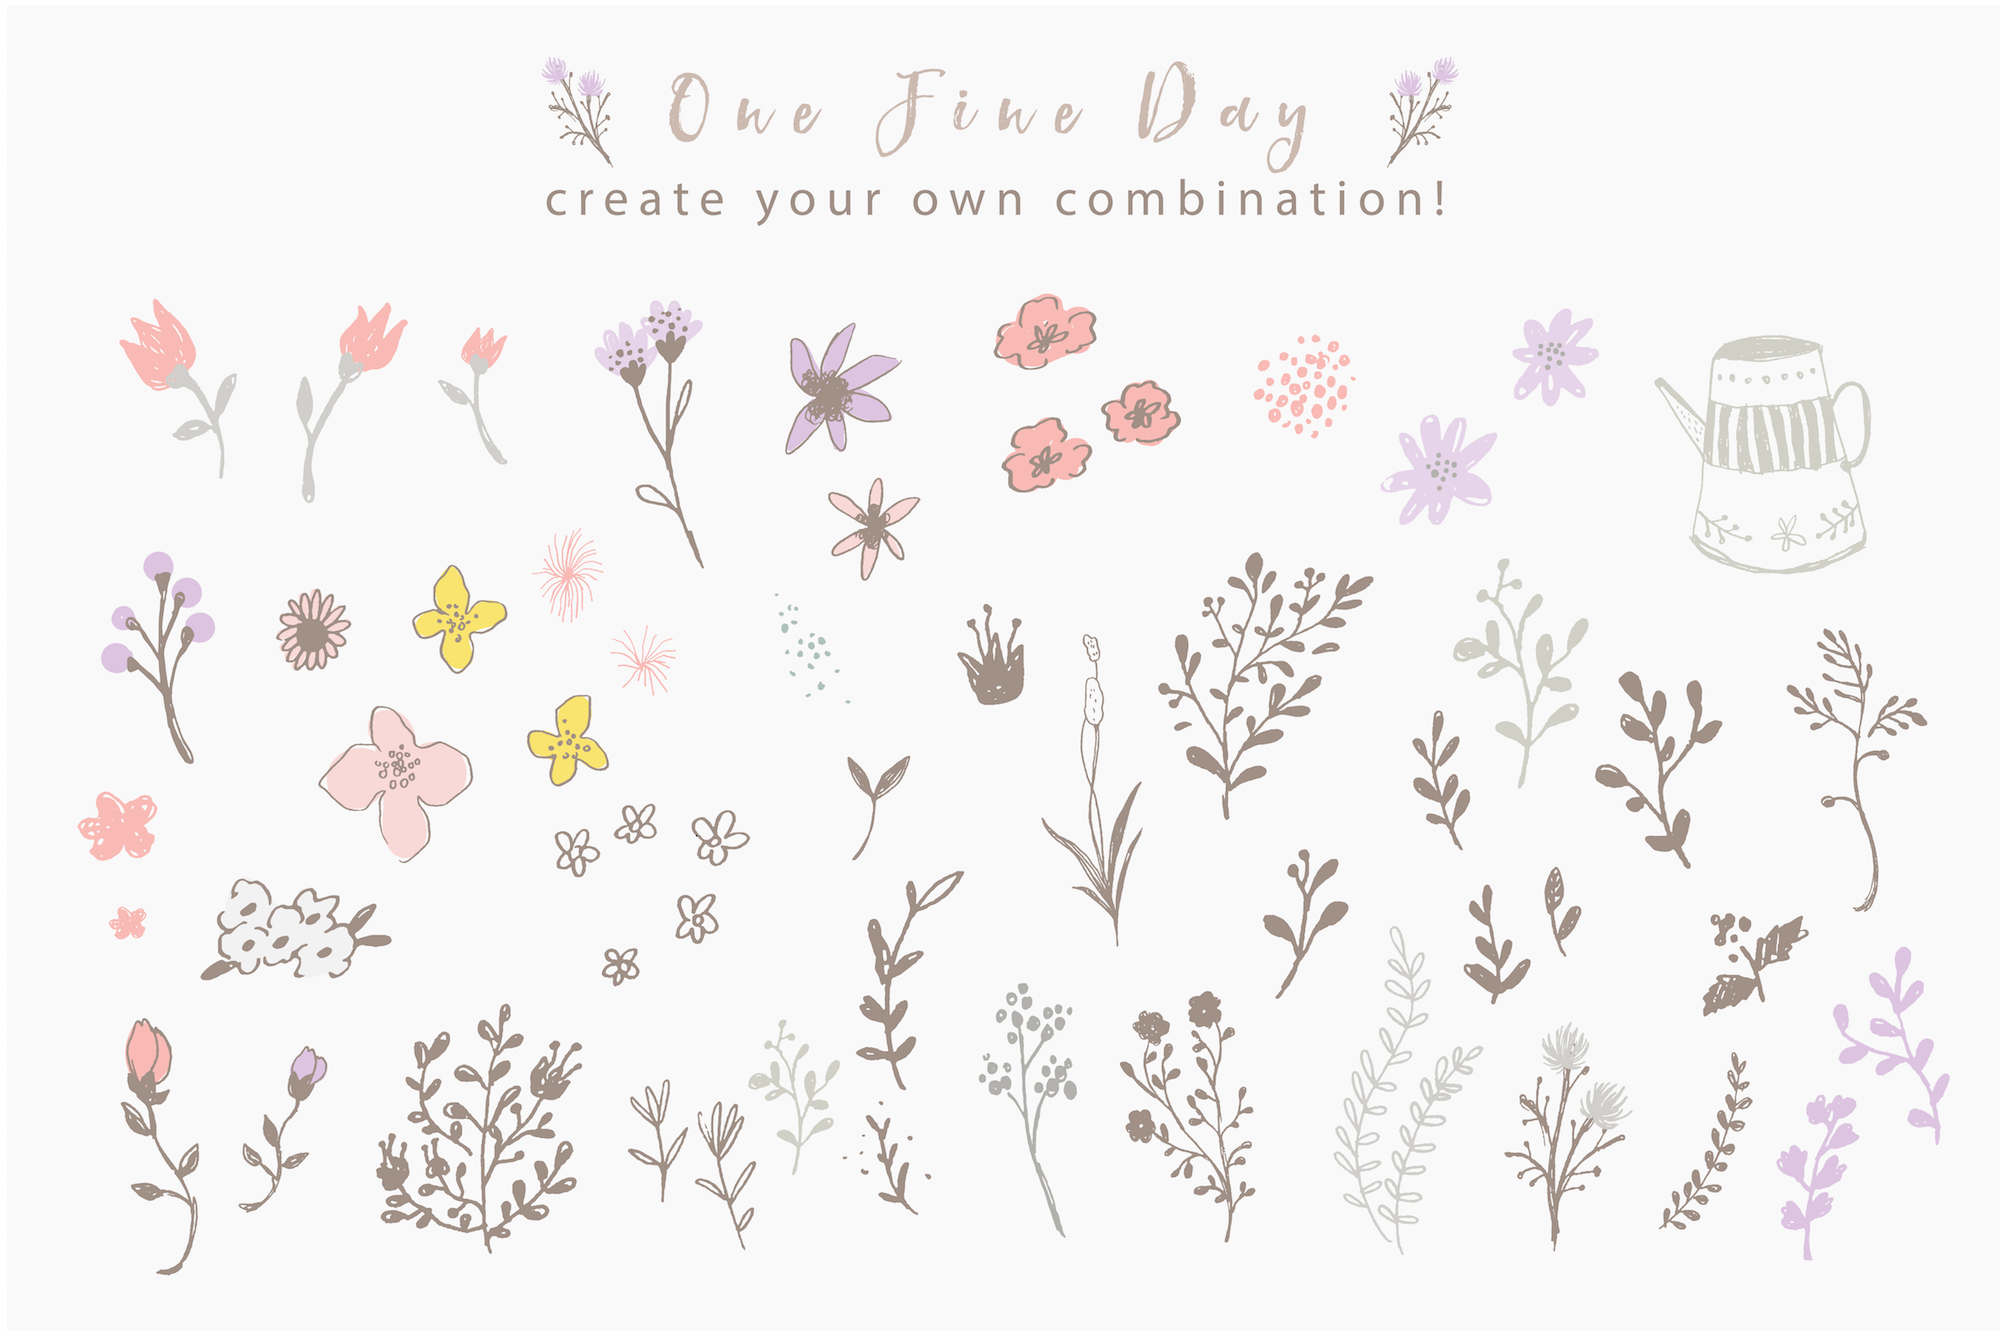 One Fine Day - Rustic Floral Design example image 1